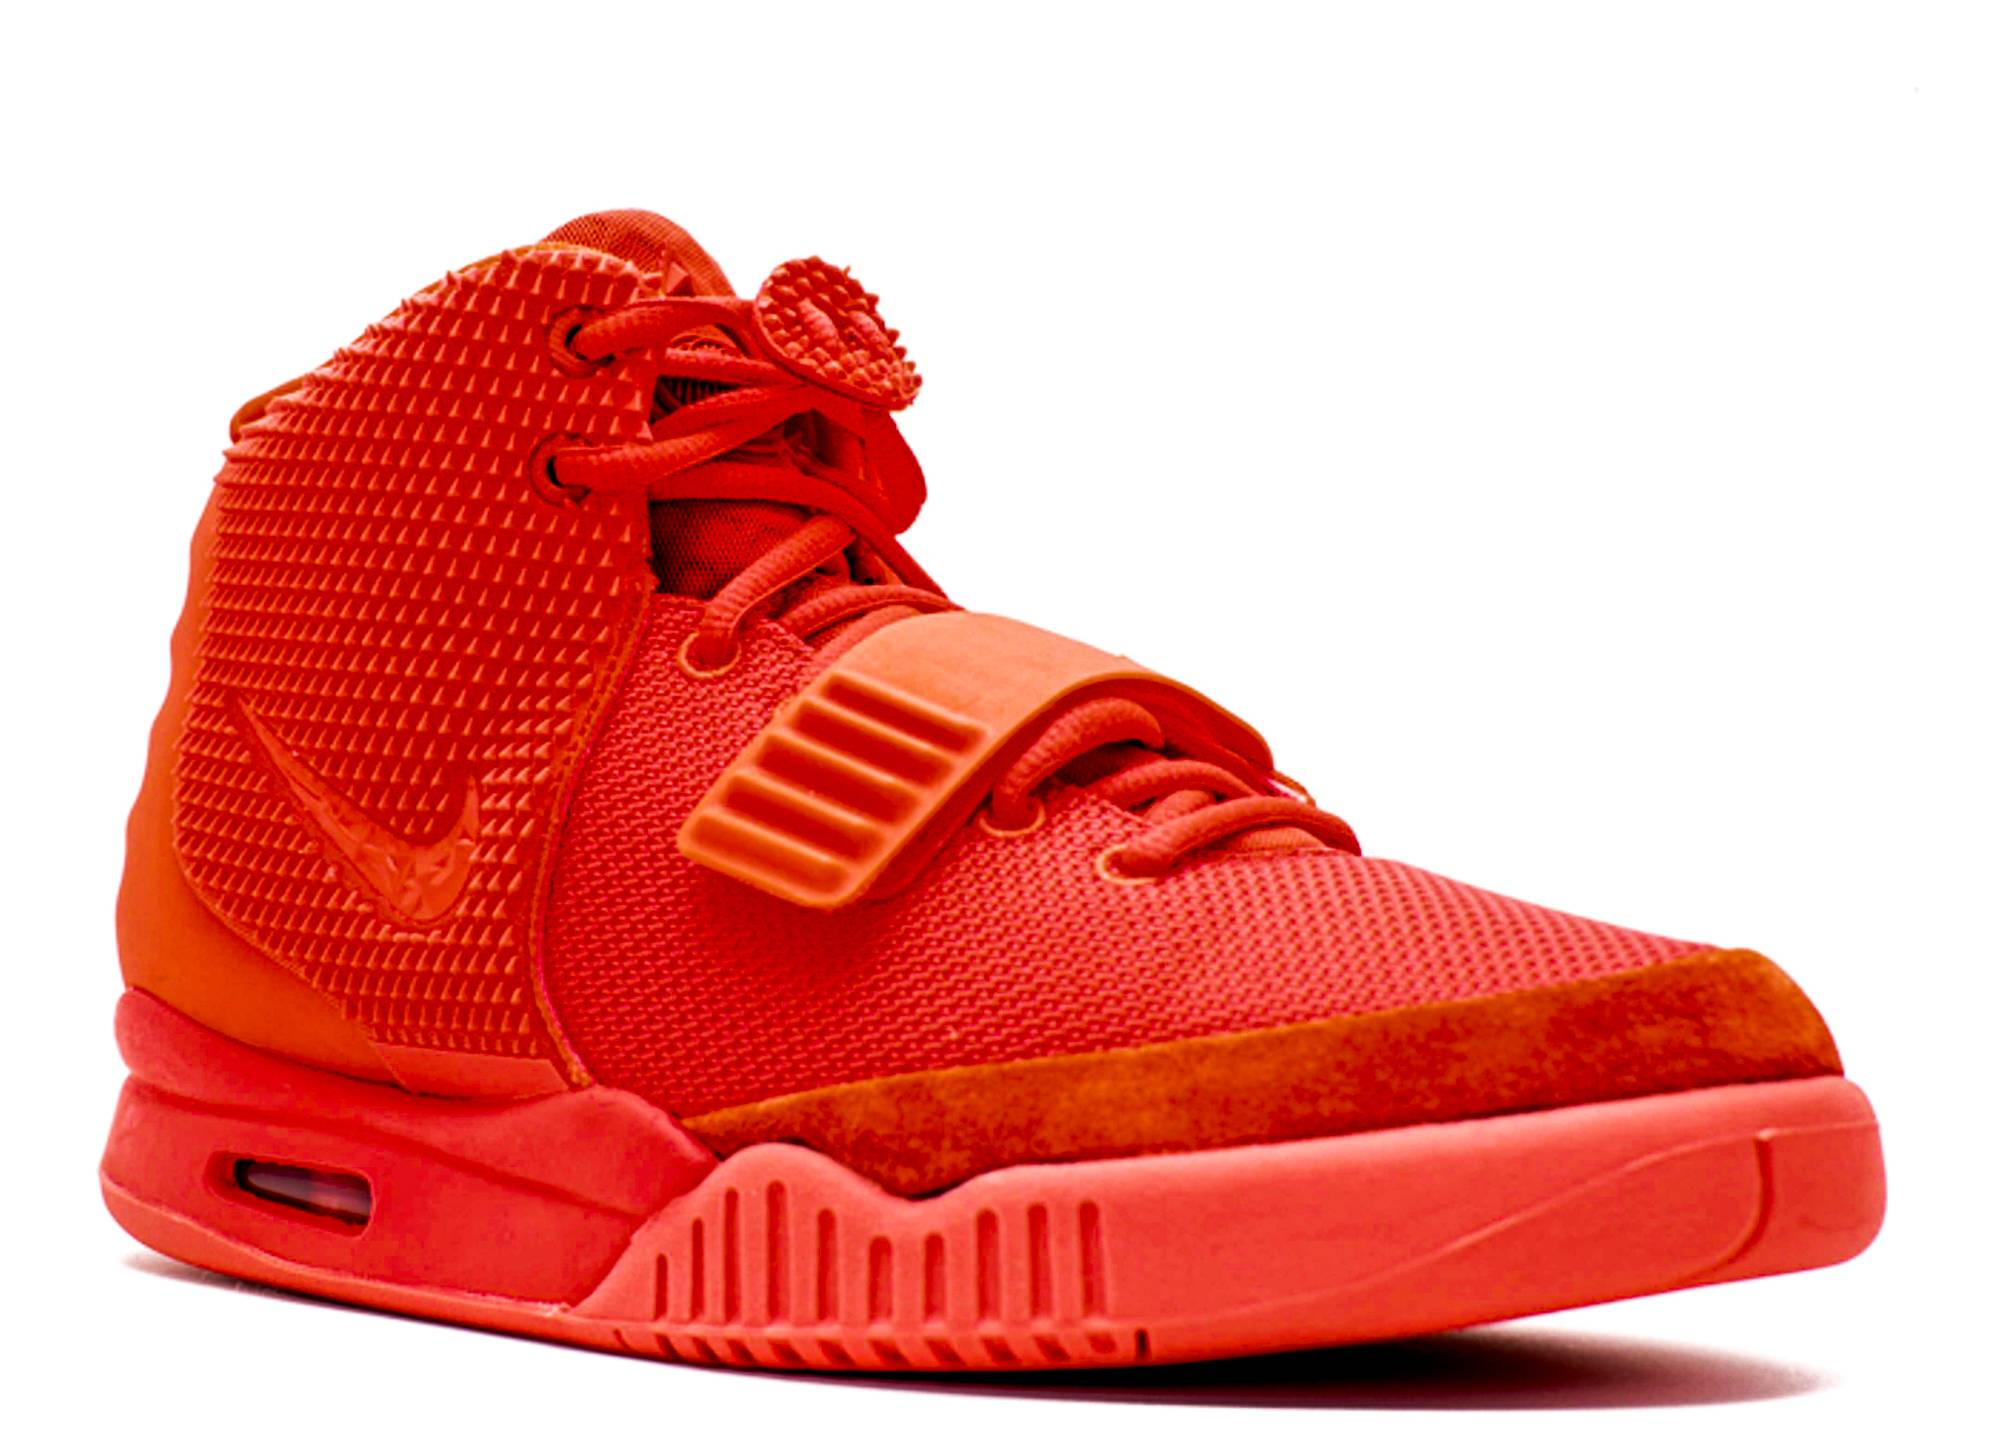 50fdbf1c66cf0 Air Yeezy Ii Red Octobers Yeezy Red October Price